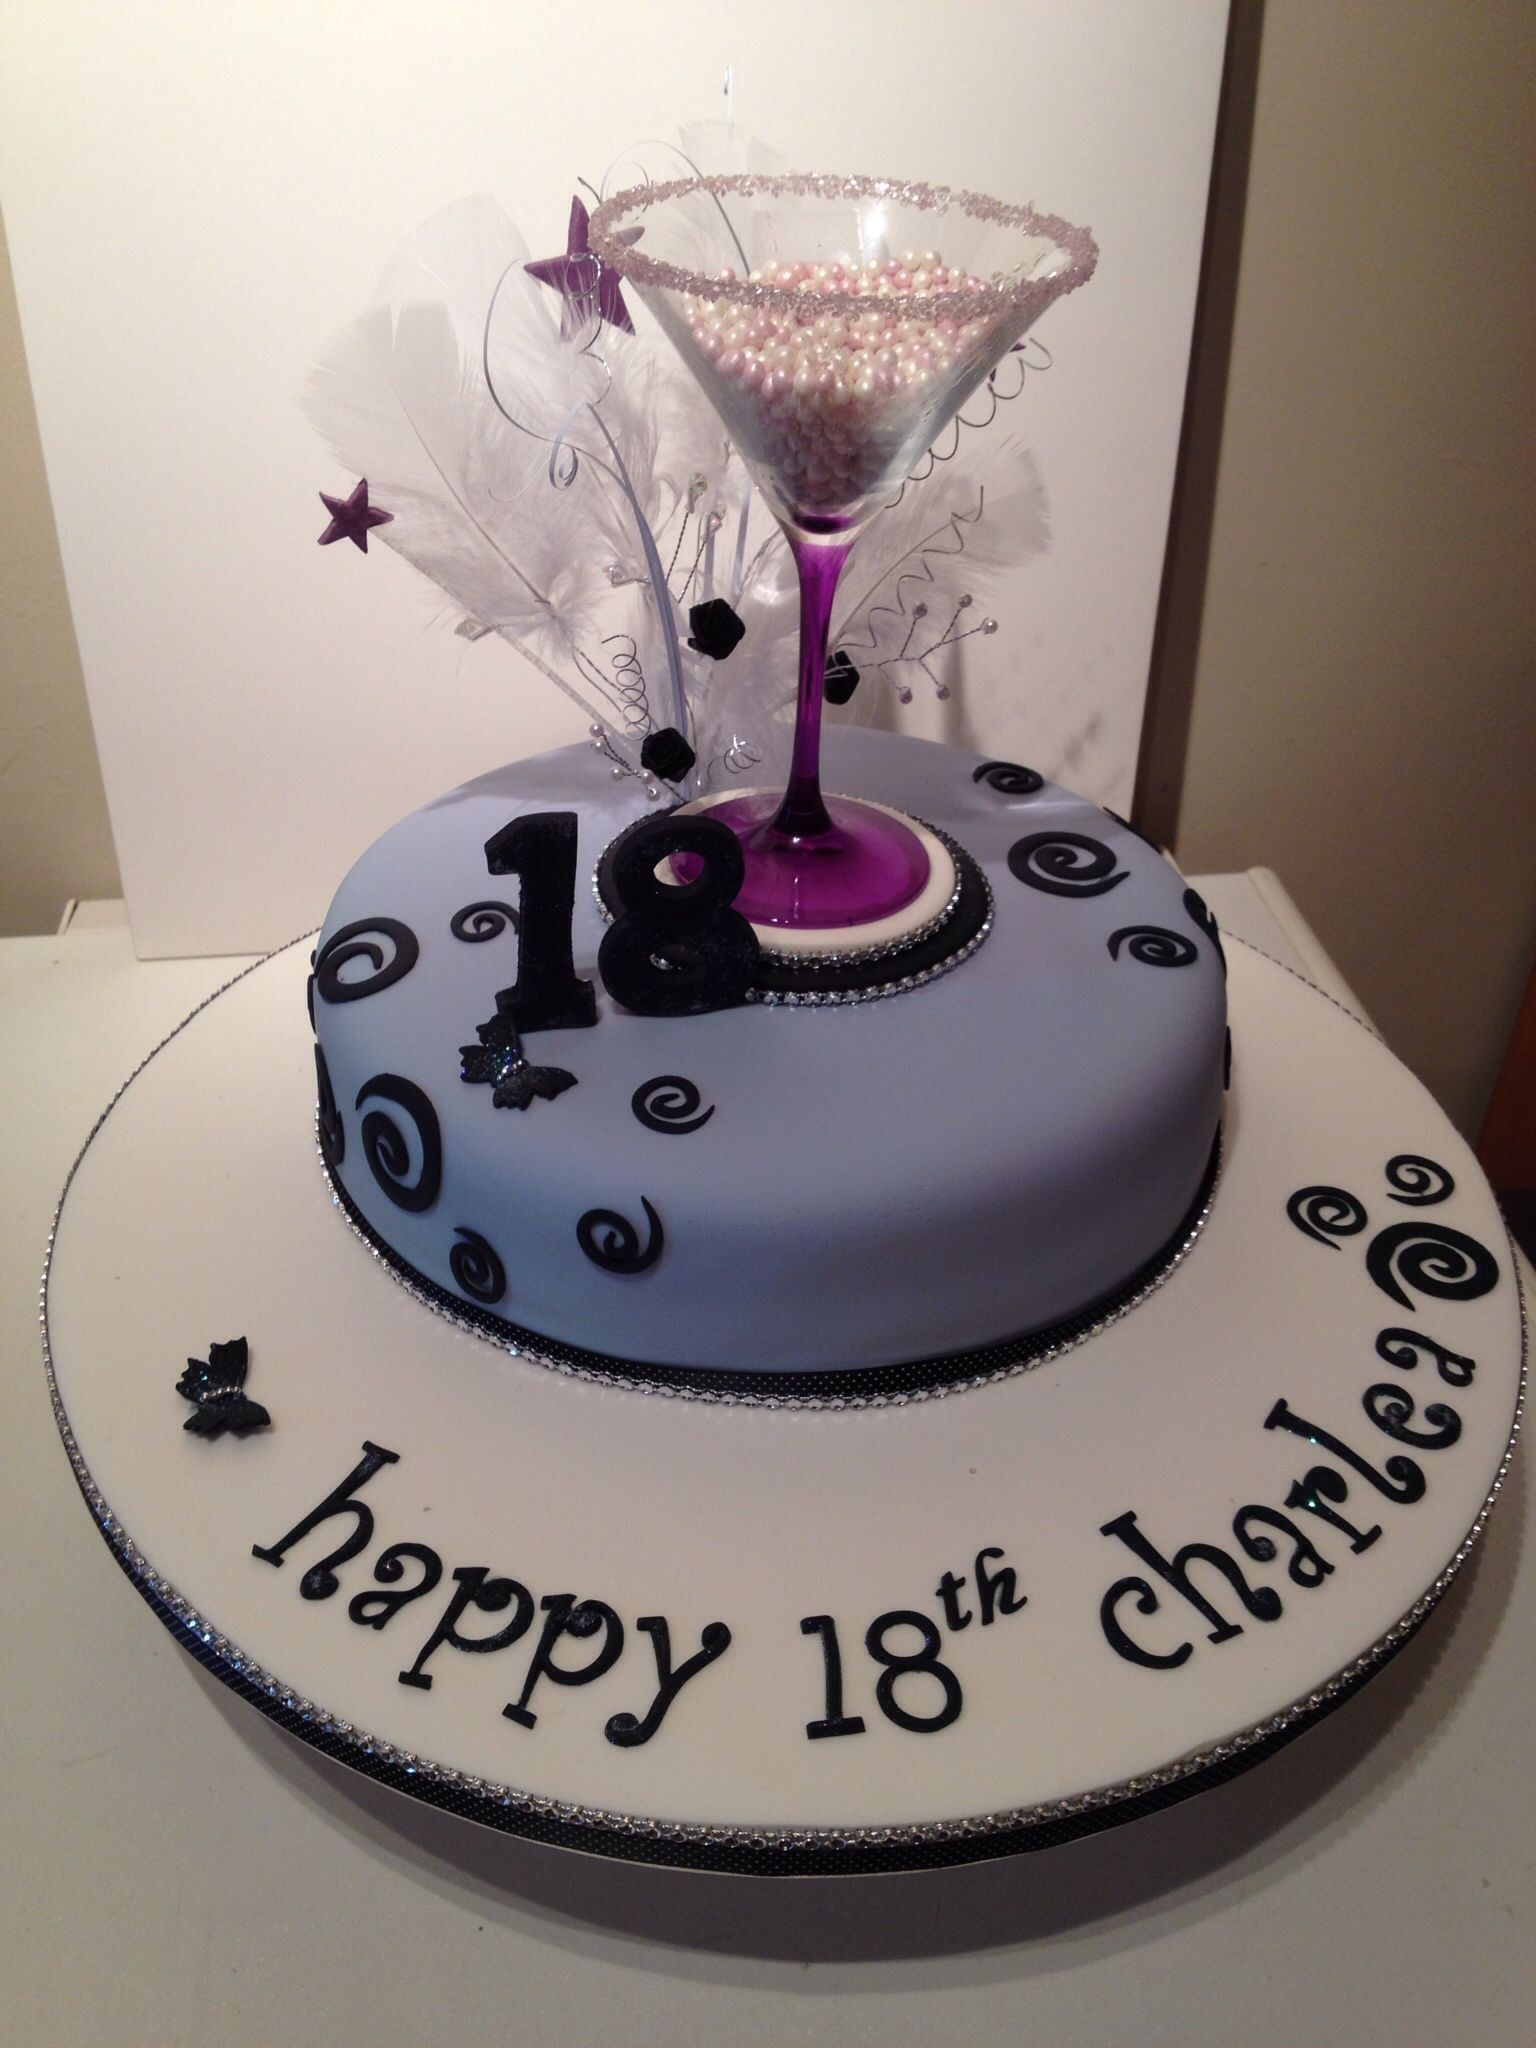 18 Birthday Cake 18th Birthday Cake Recipes Pinterest 18th